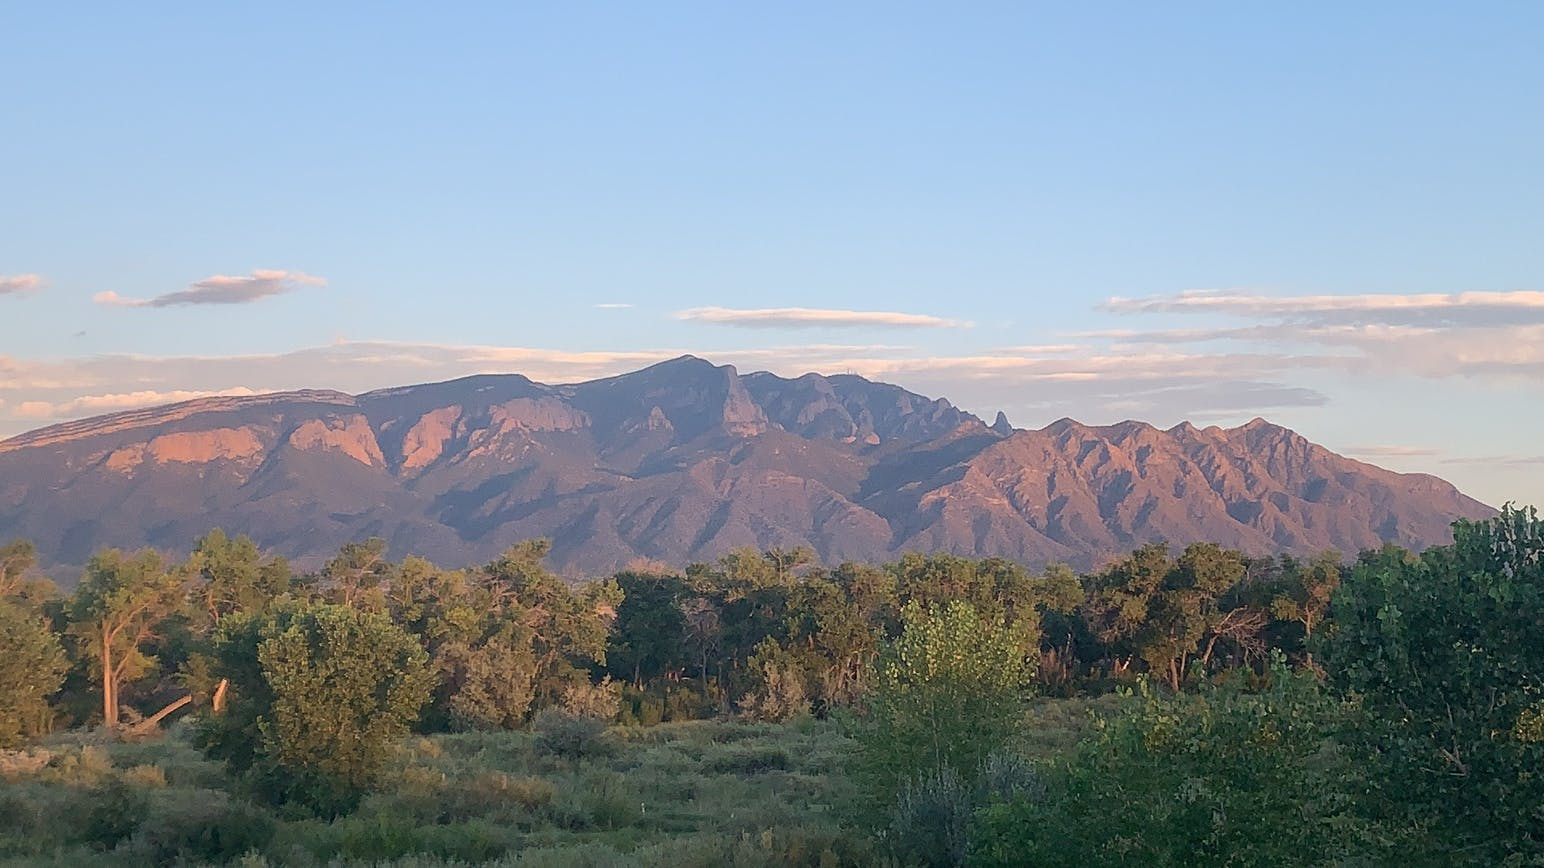 sunset on mountain, view from the campground